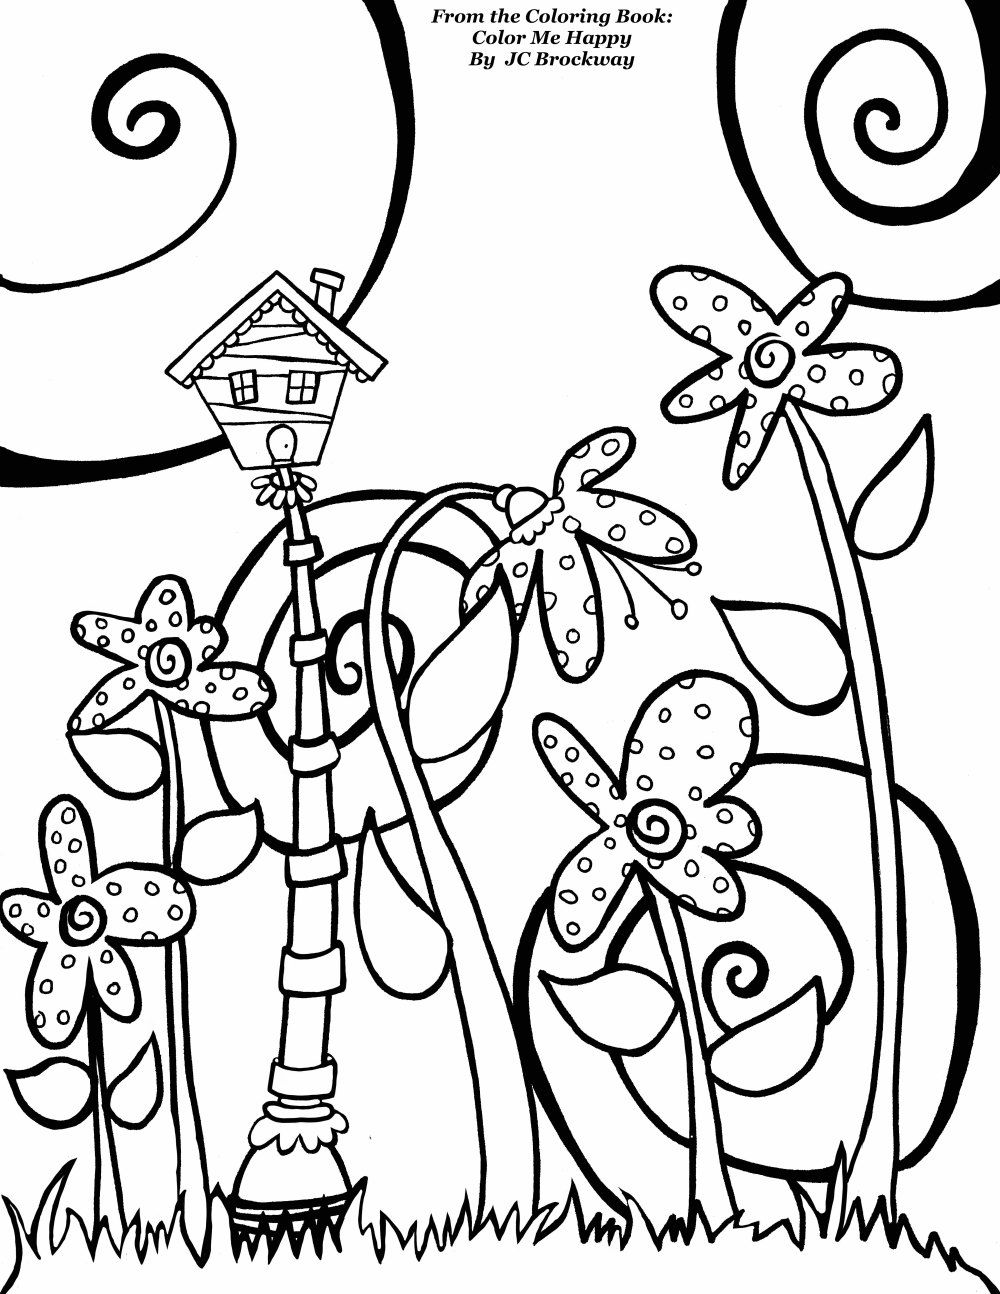 Free Birdhouse Coloring Page From Adult Worldwide The Book Color Me